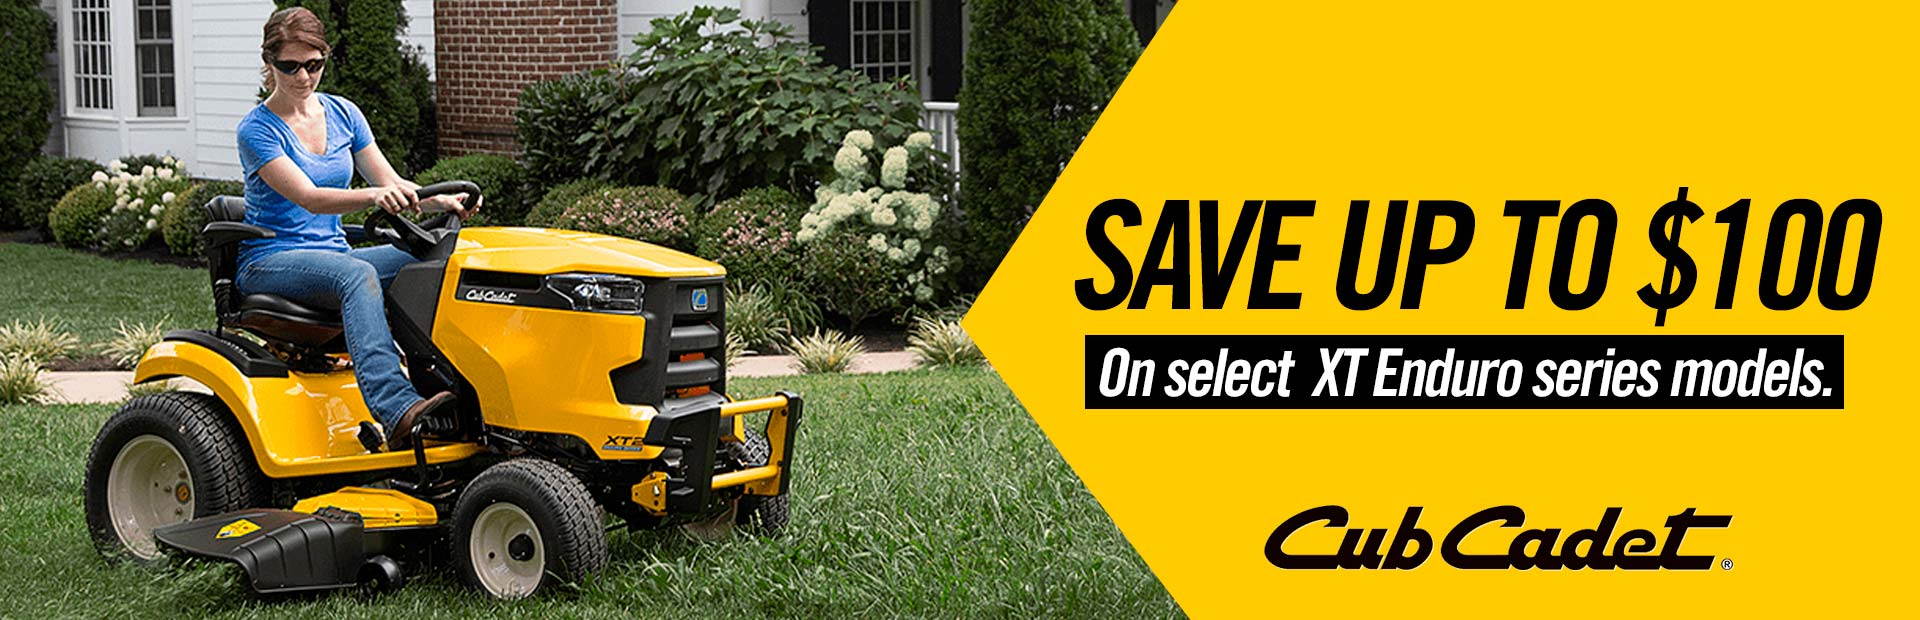 Cub Cadet: SAVE UP TO $100 ON SELECT XT ENDURO SERIES MODELS